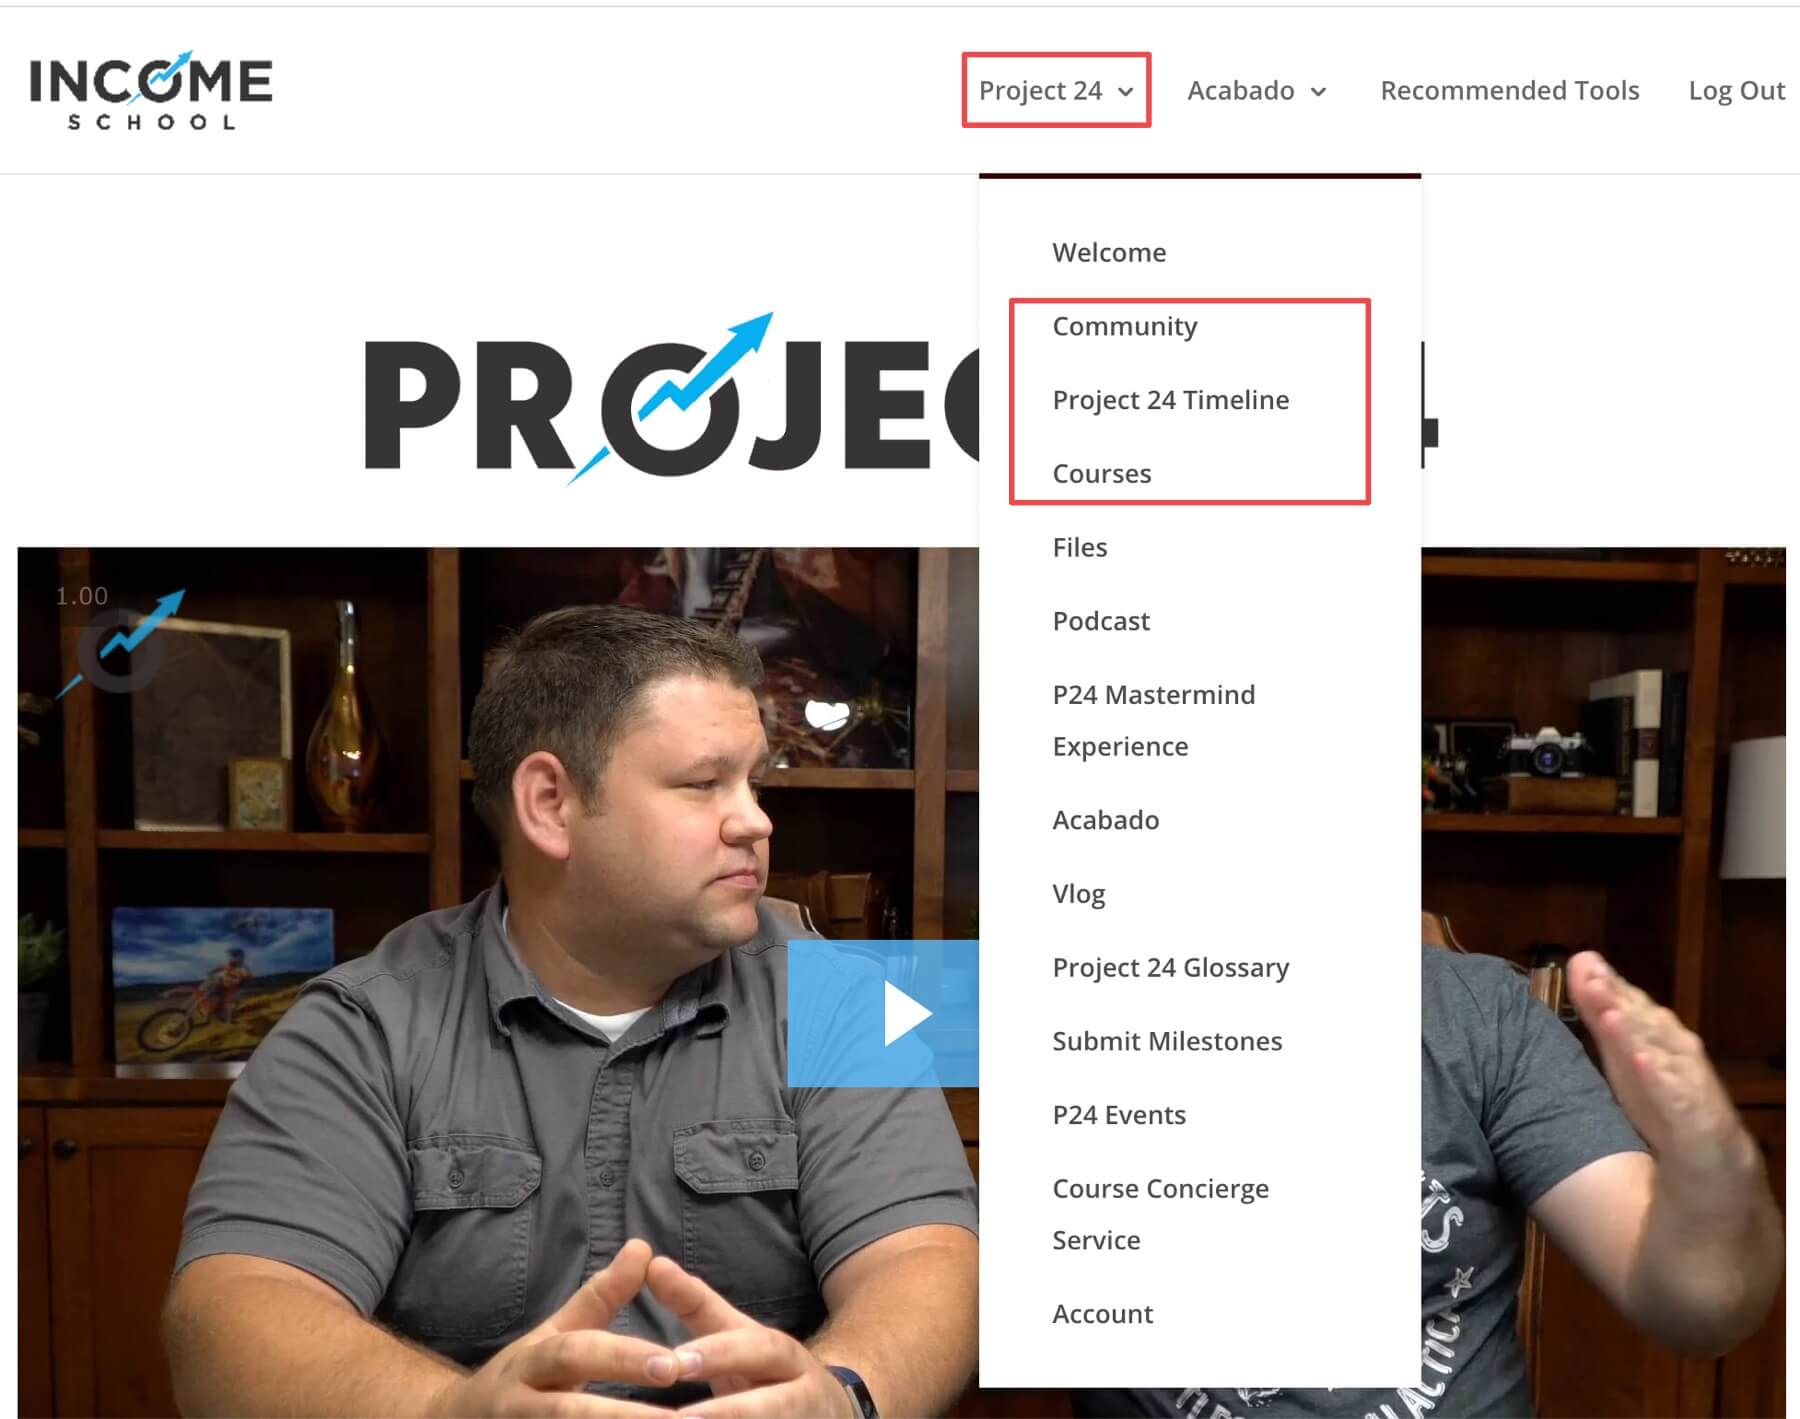 Project 24 welcome page and menu